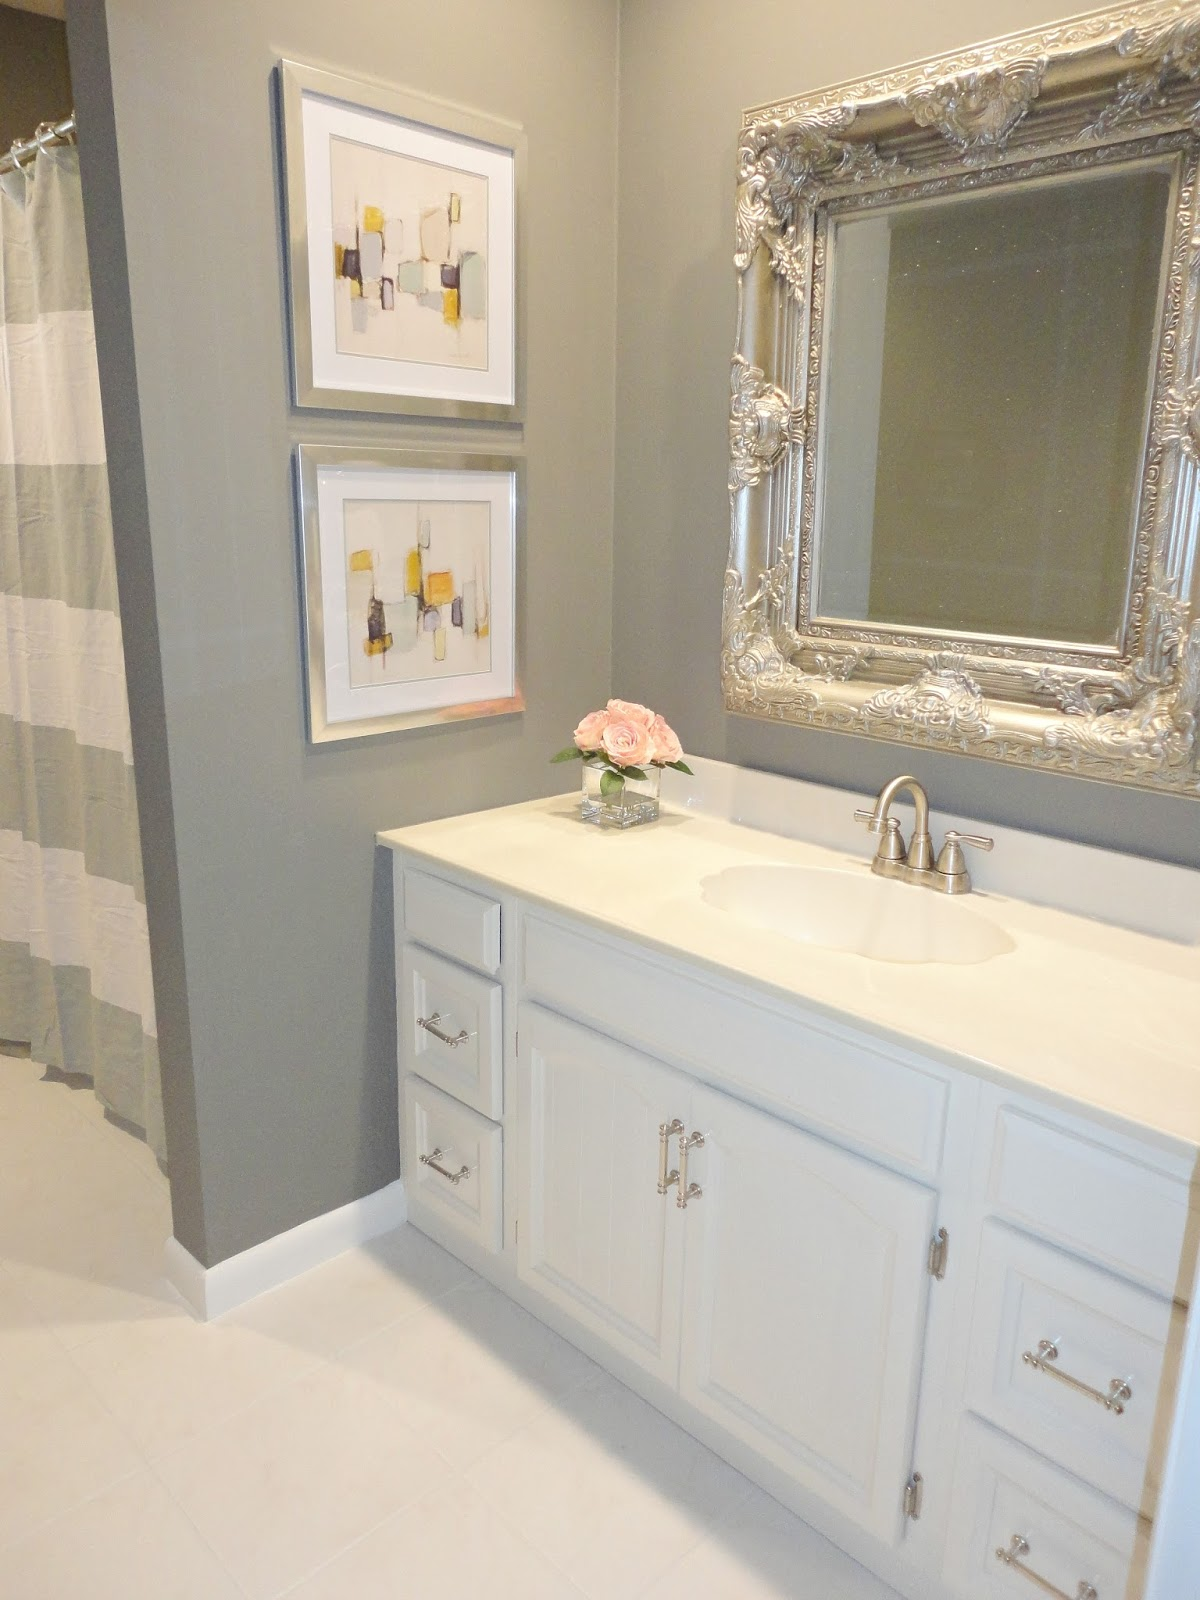 Bathroom Remodel Budget livelovediy: diy bathroom remodel on a budget